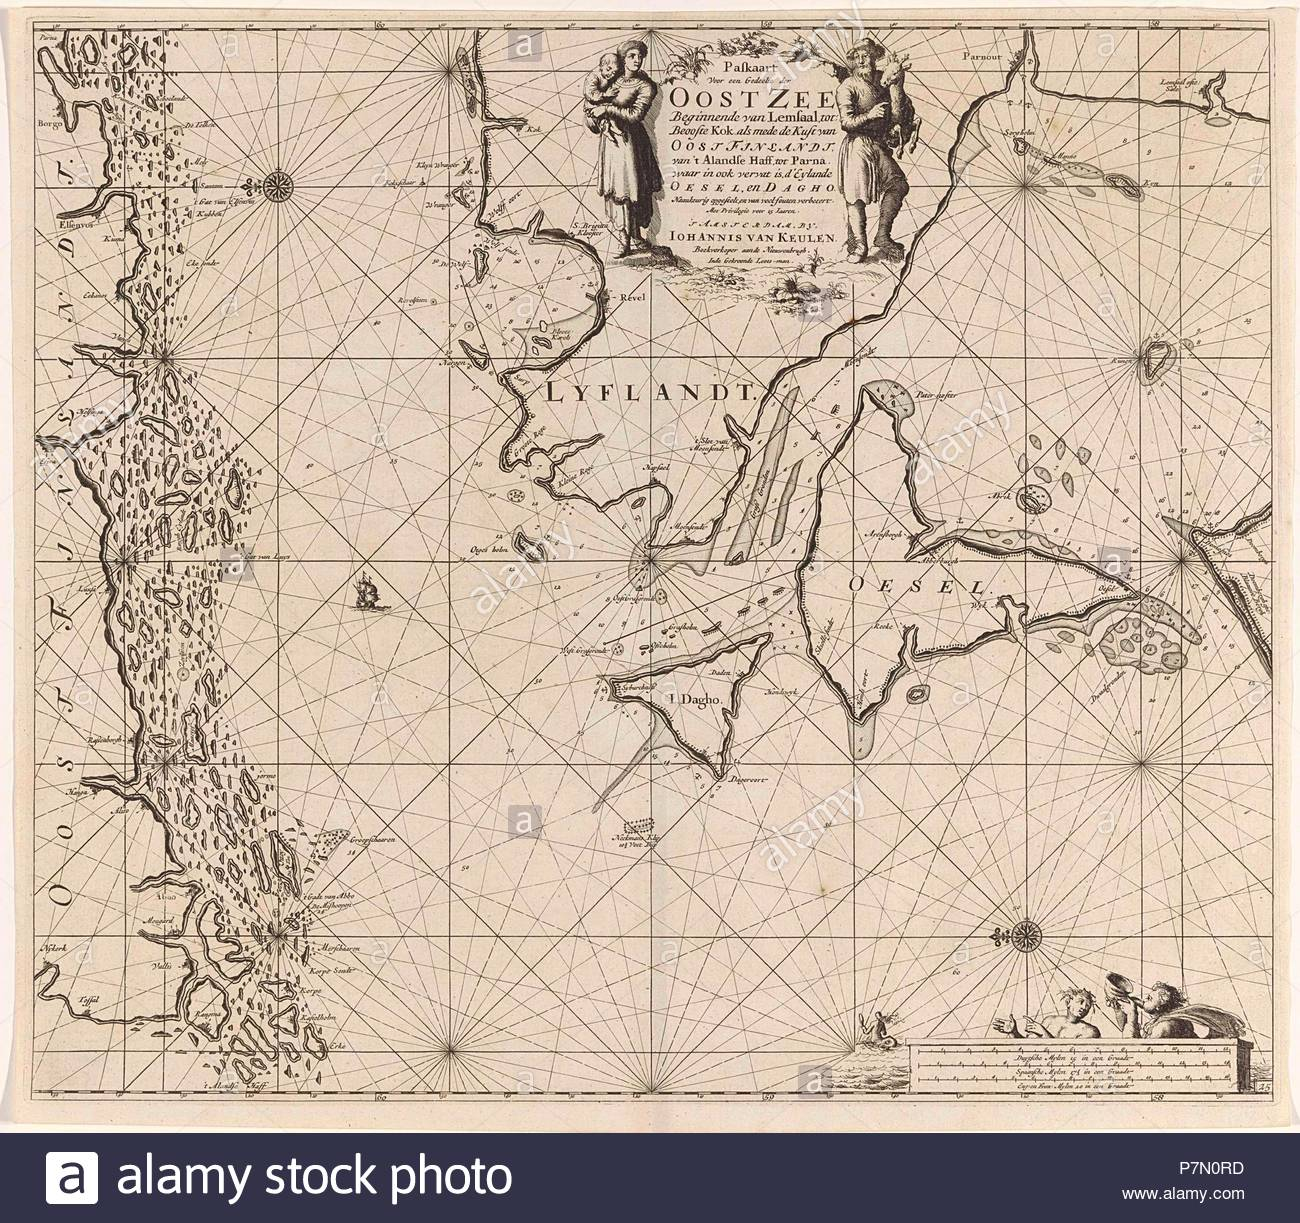 Sea chart of the mouth of the Gulf of Finland in the Baltic Sea, Jan Luyken, Johannes van Keulen (I), unknown, 1681 - 1799. - Stock Image